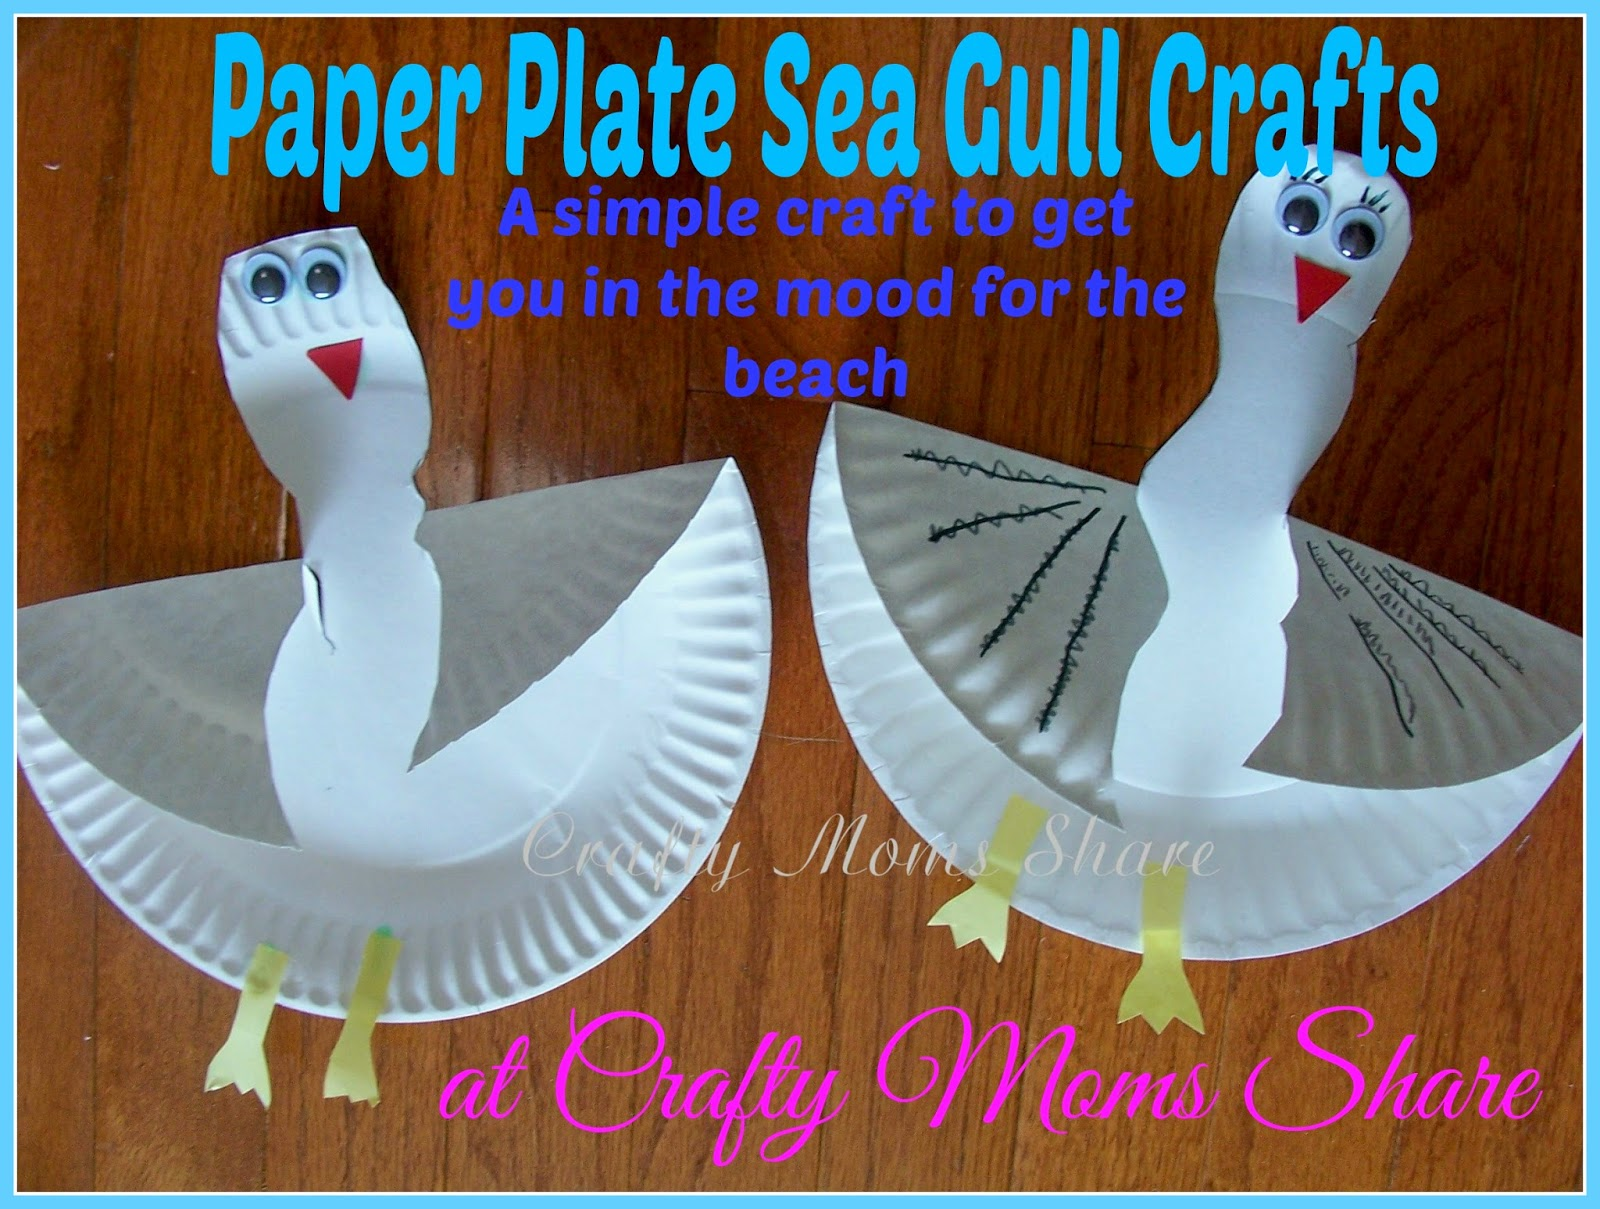 Every Thursday They Have A Free Craft And Hazel Loves To Go Do It This Weeks Was Simple Paper Plate